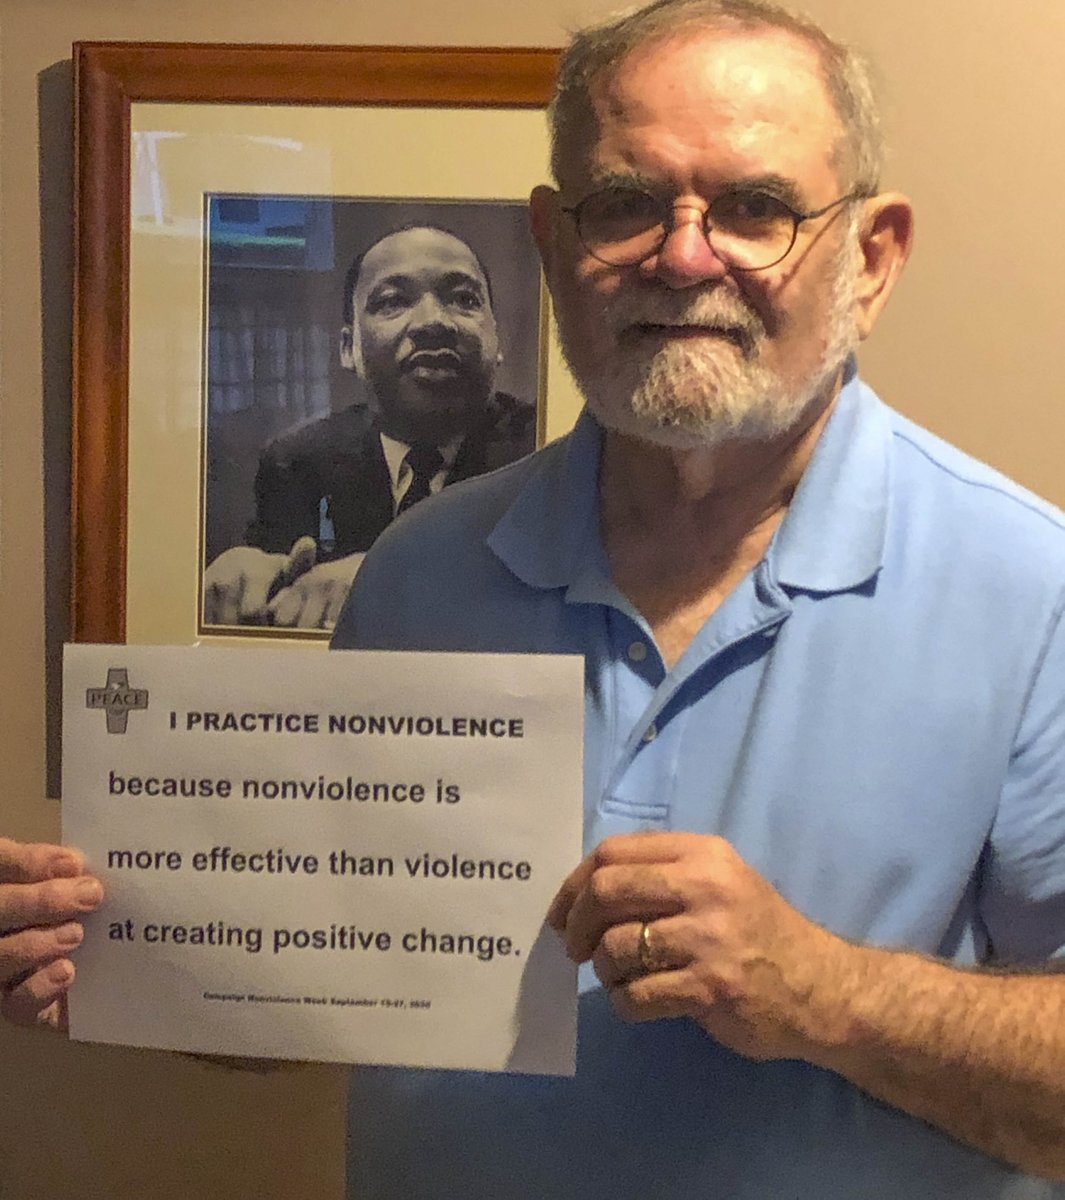 #CapmaignNonviolence week starts today. We need more peace and nonviolence in our American lives. #nonviolence https://t.co/zXQA3JTsIO